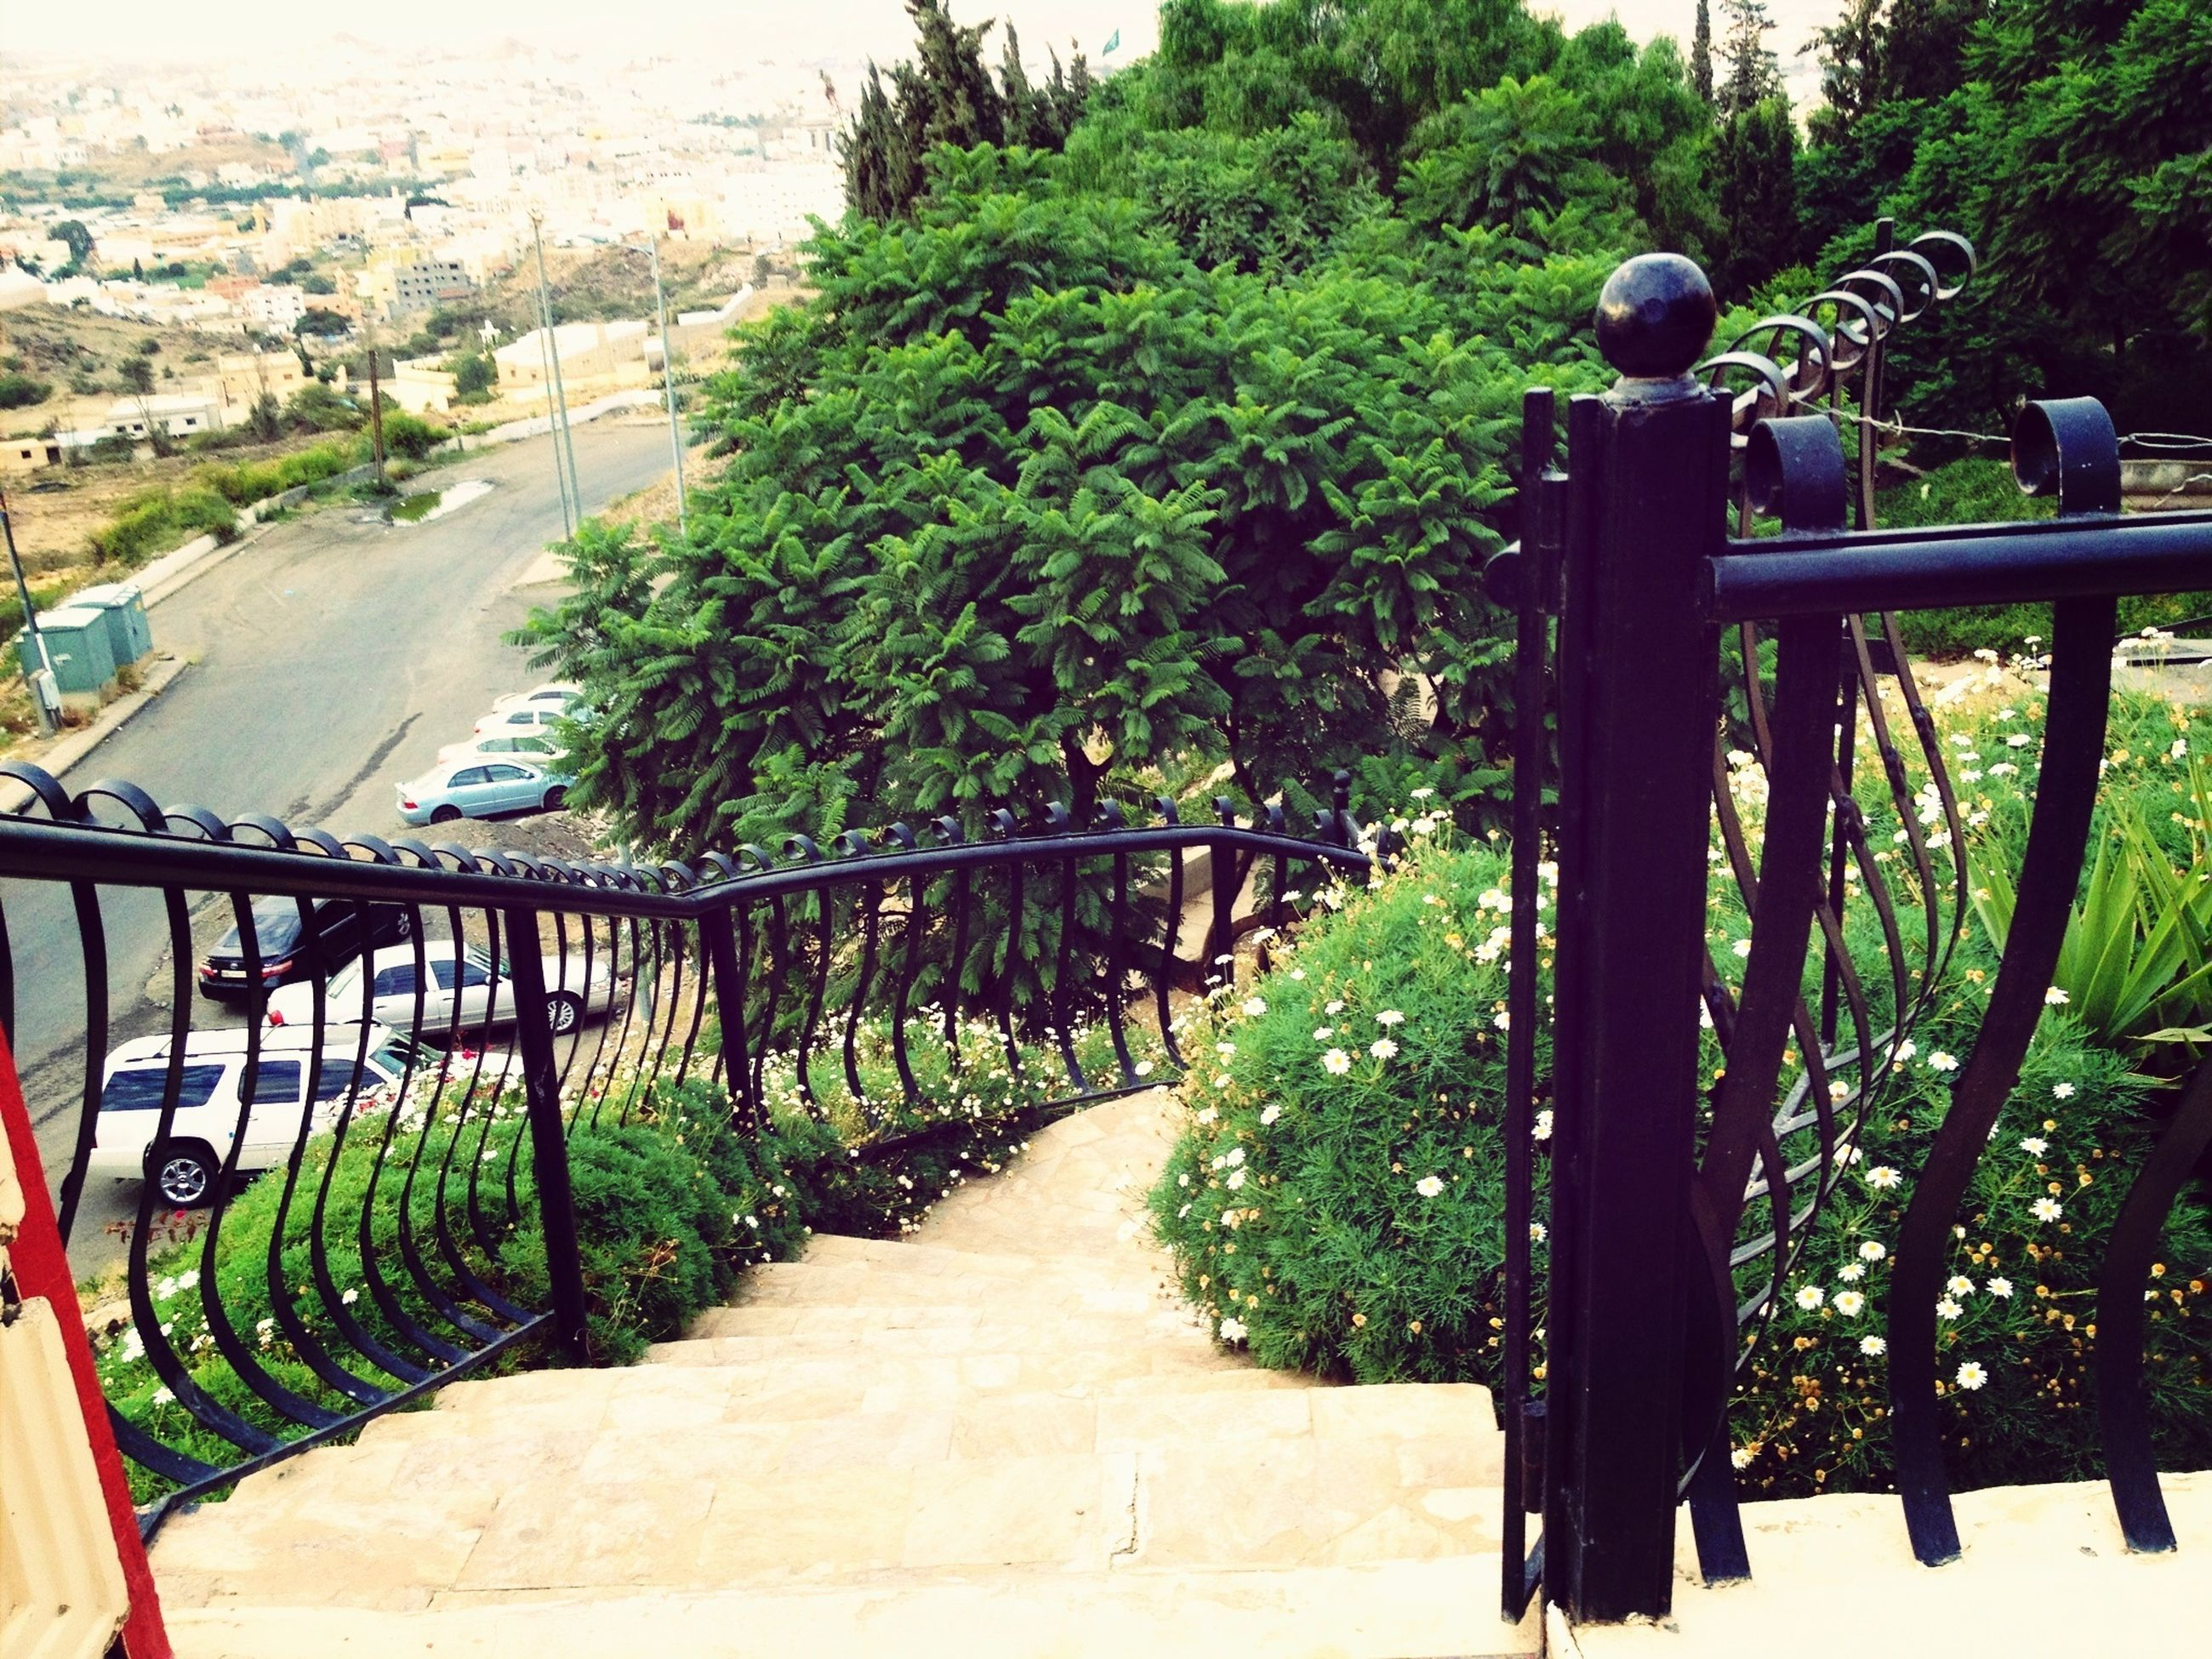 tree, railing, green color, growth, plant, built structure, the way forward, high angle view, incidental people, park - man made space, architecture, footpath, nature, formal garden, day, outdoors, sunlight, footbridge, building exterior, bridge - man made structure